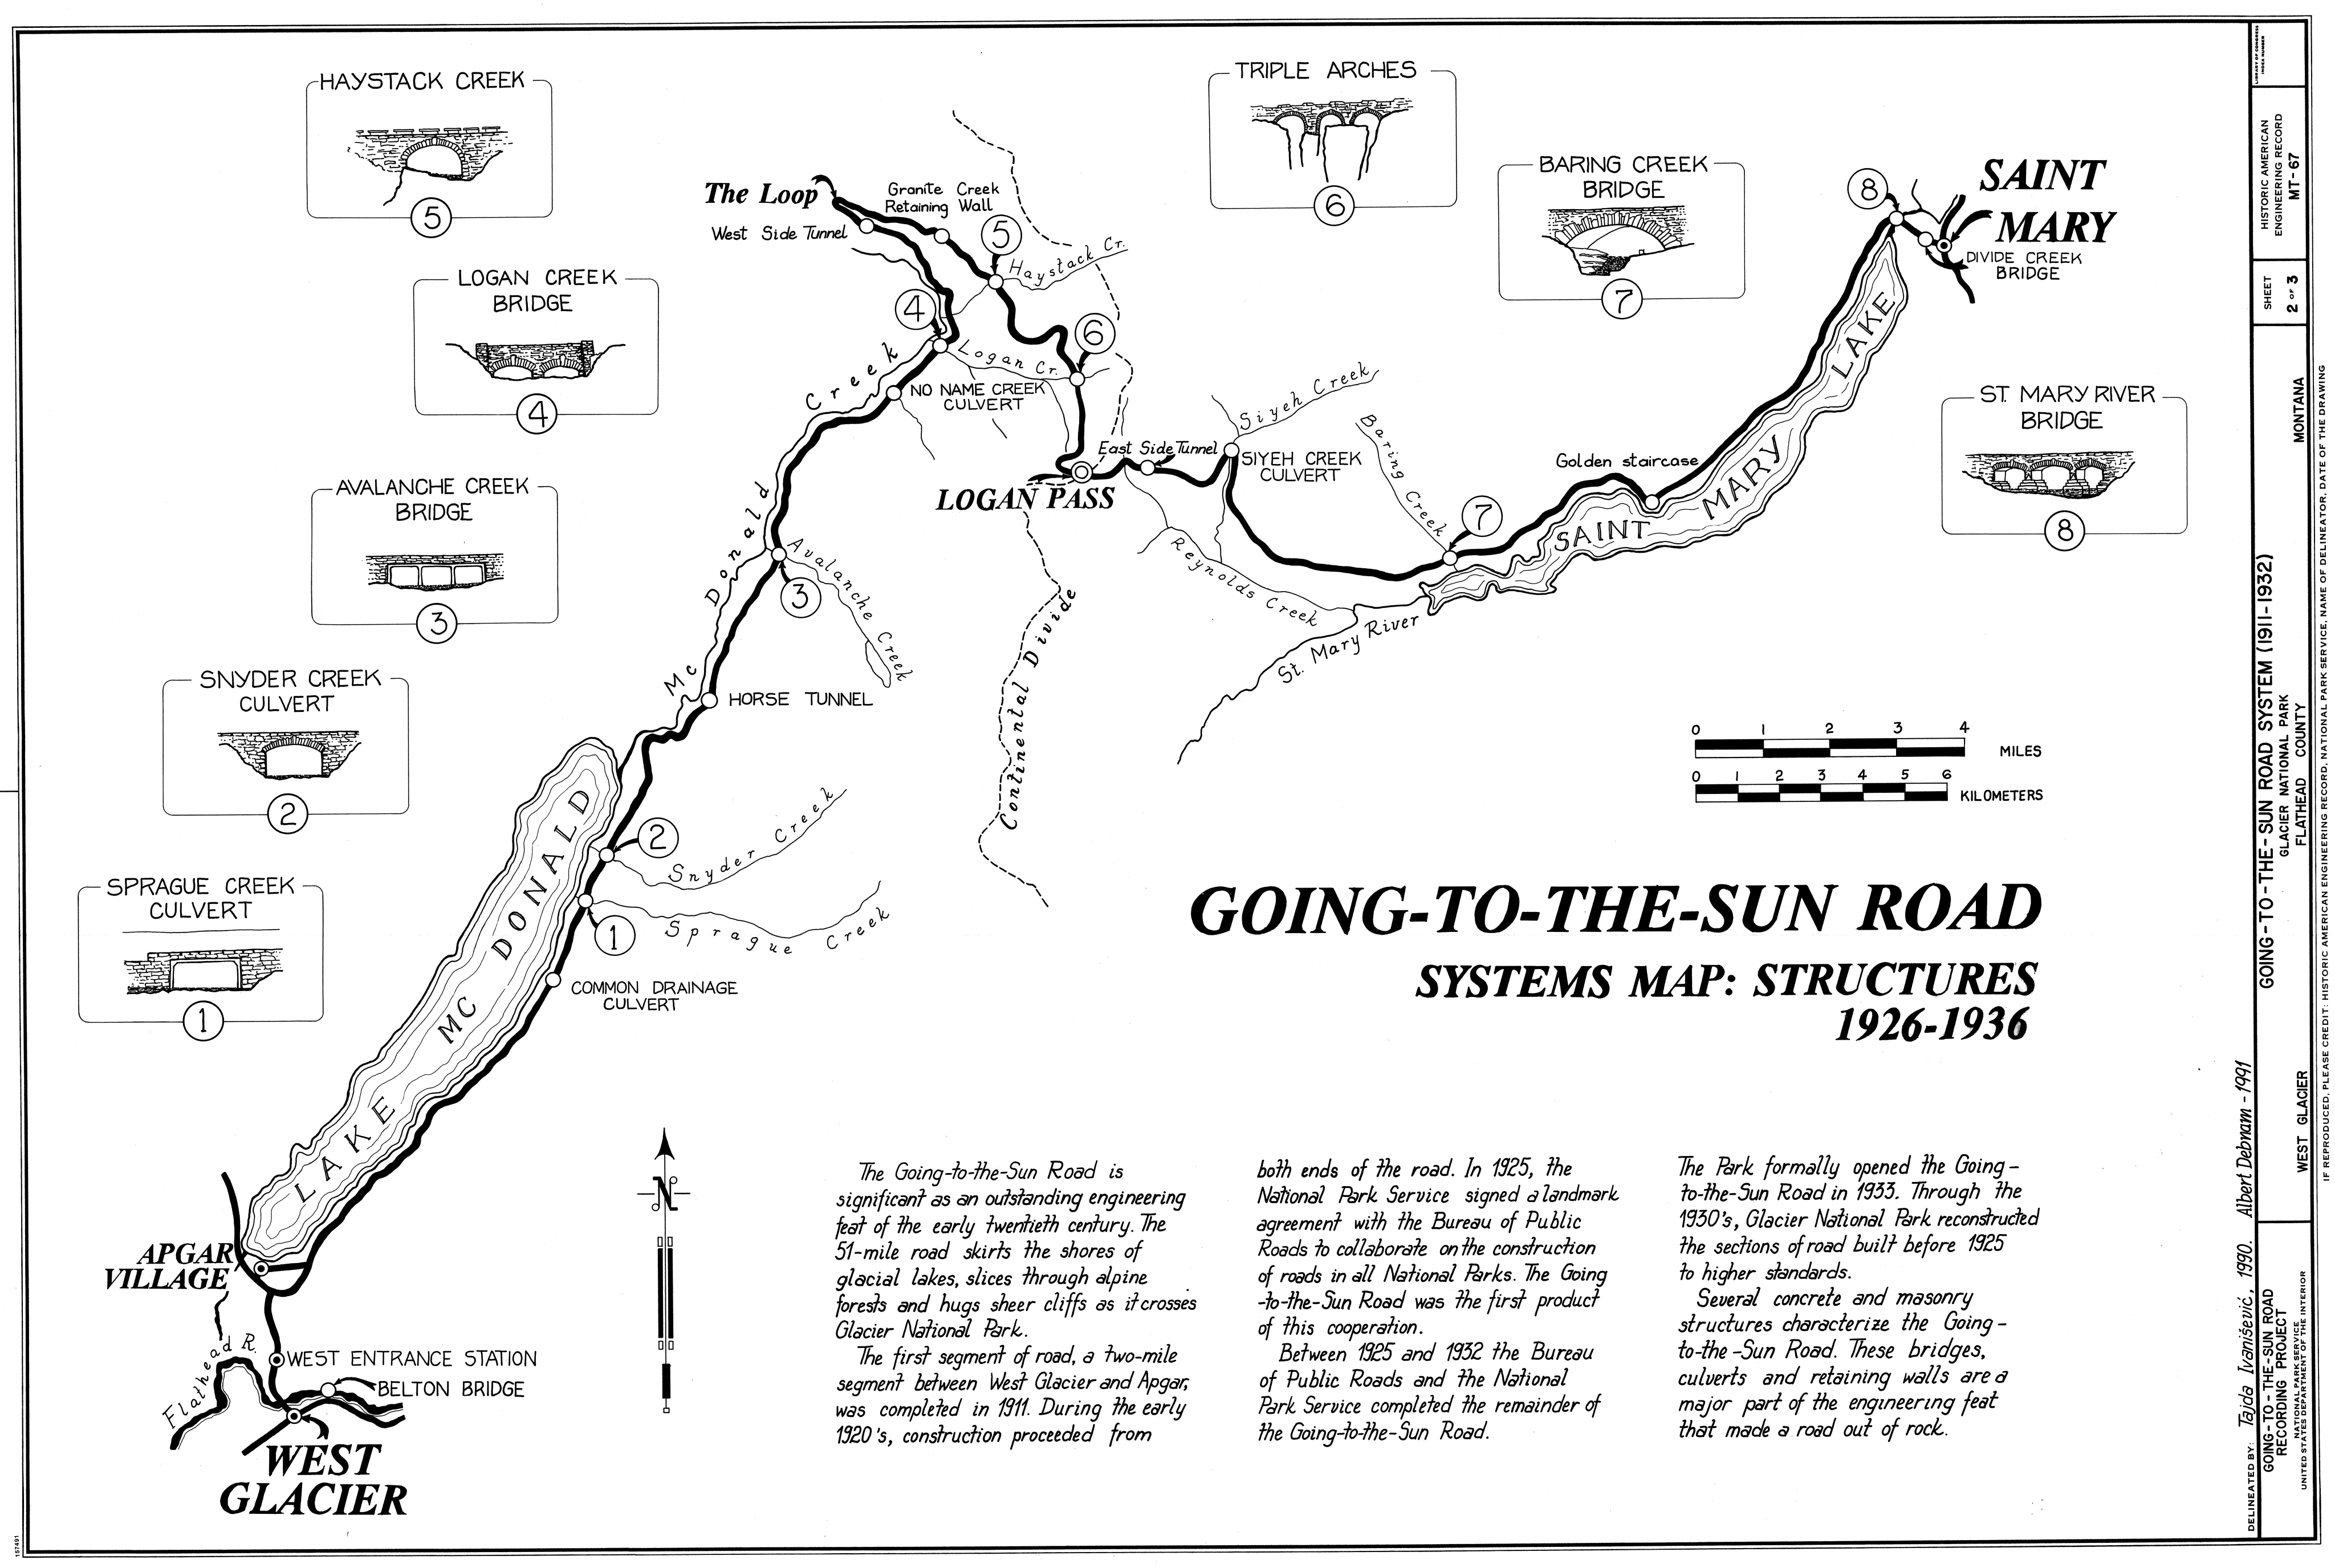 Going-To-The-Sun Road, Glacier National Park, Montana - Systems Map: Structures, 1926-1936